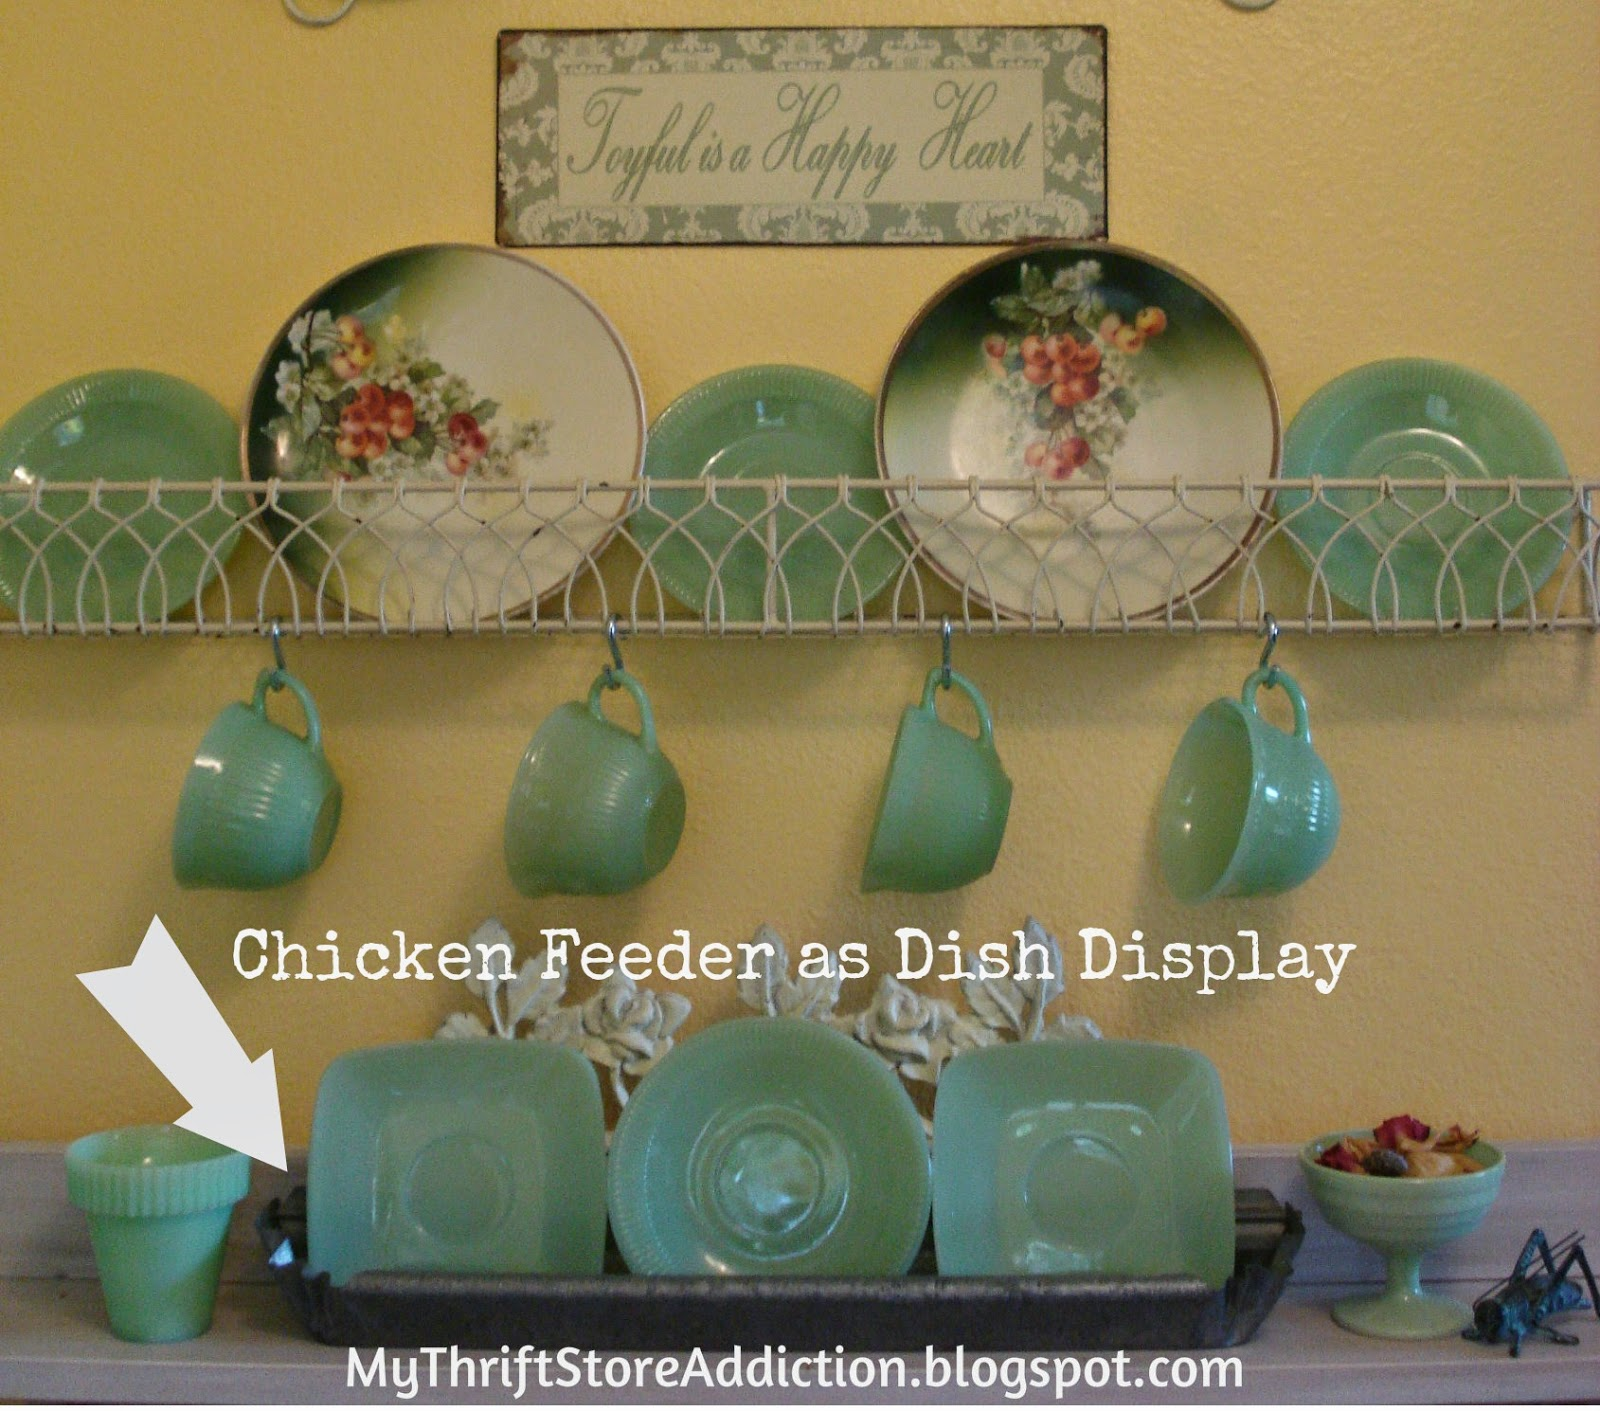 Chicken feeder epurposed for dish display